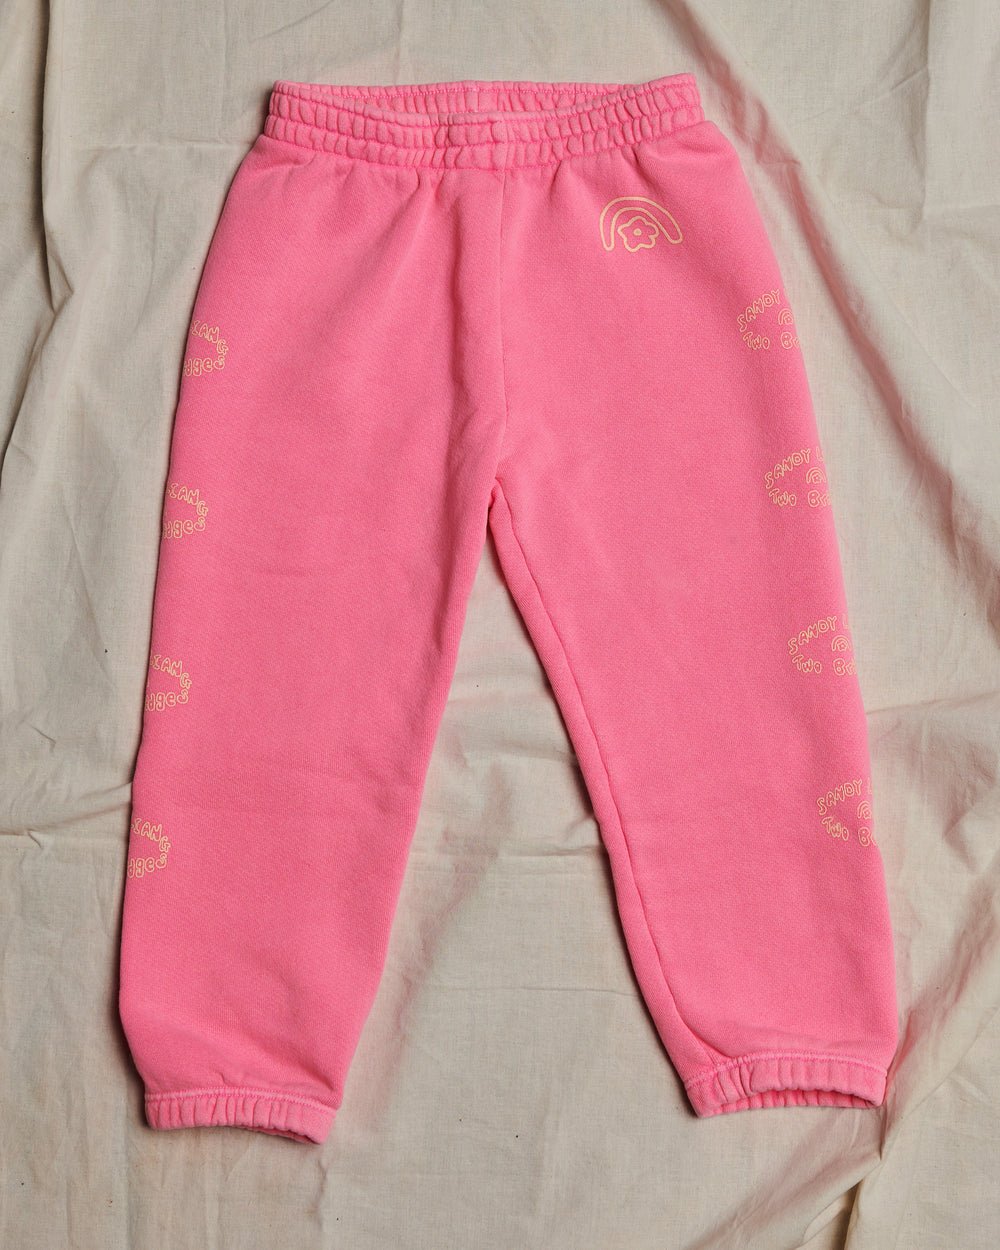 Sandy Liang x Two Bridges Hot Pink Sweatpants